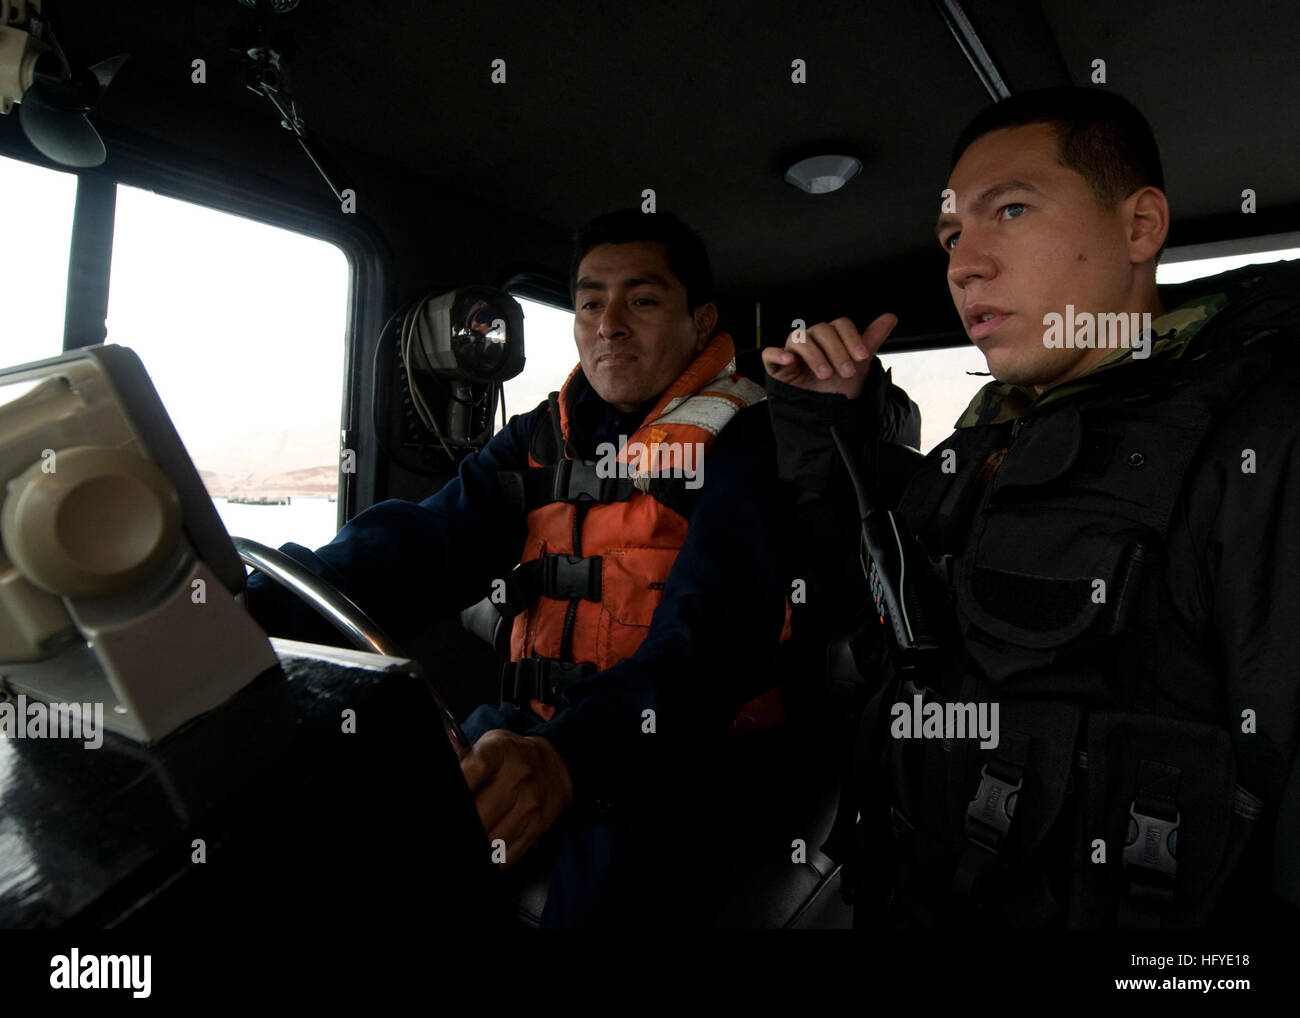 100921-N-9095H-056  LIMA, Peru (Sept. 21, 2010) Boatswain's Mate 1st Class Edwin Mantilla, right, security force Stock Photo